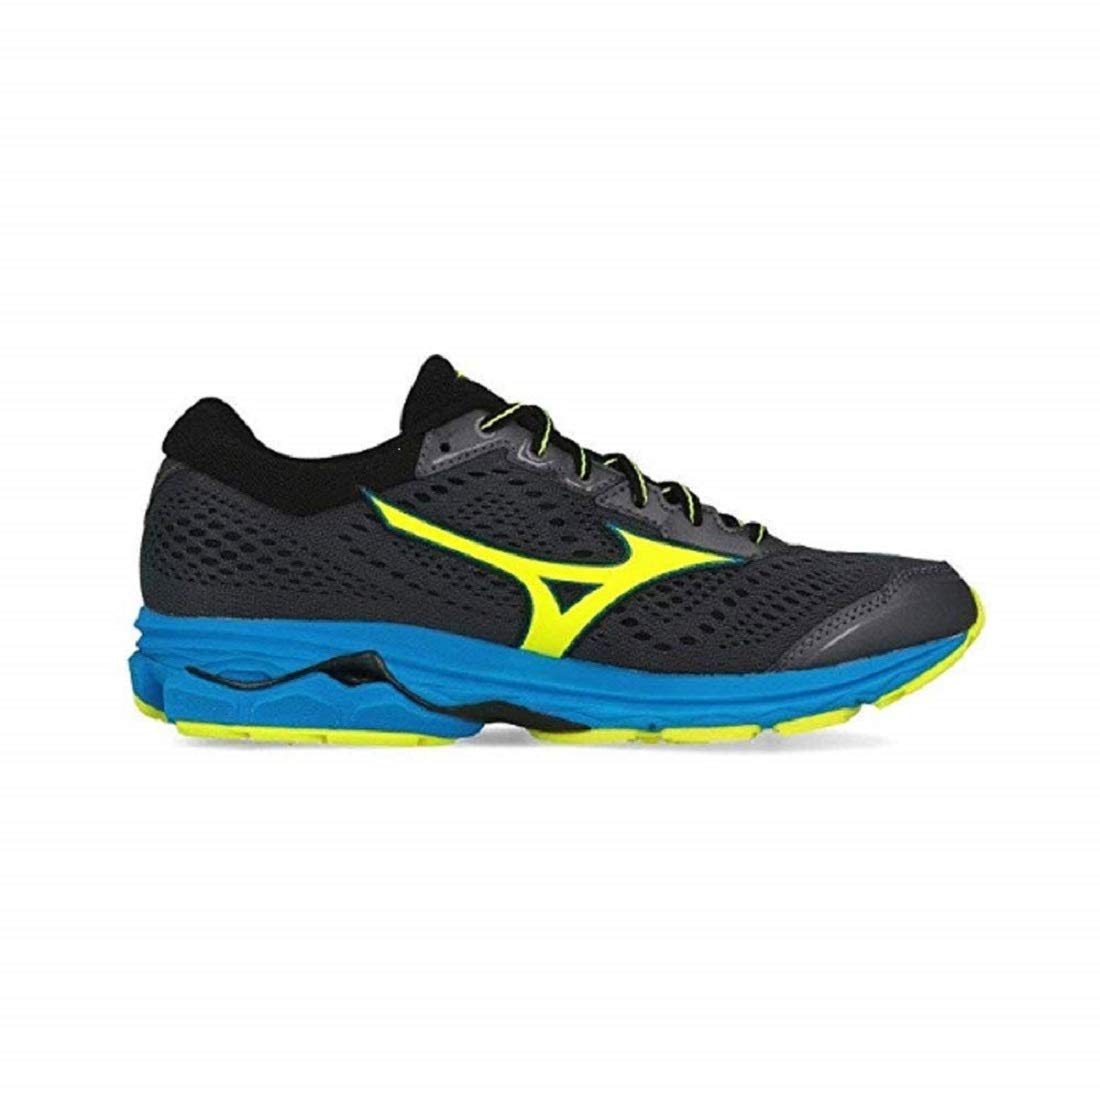 Mizuno Wave Rider 22, Sneakers Basses Homme